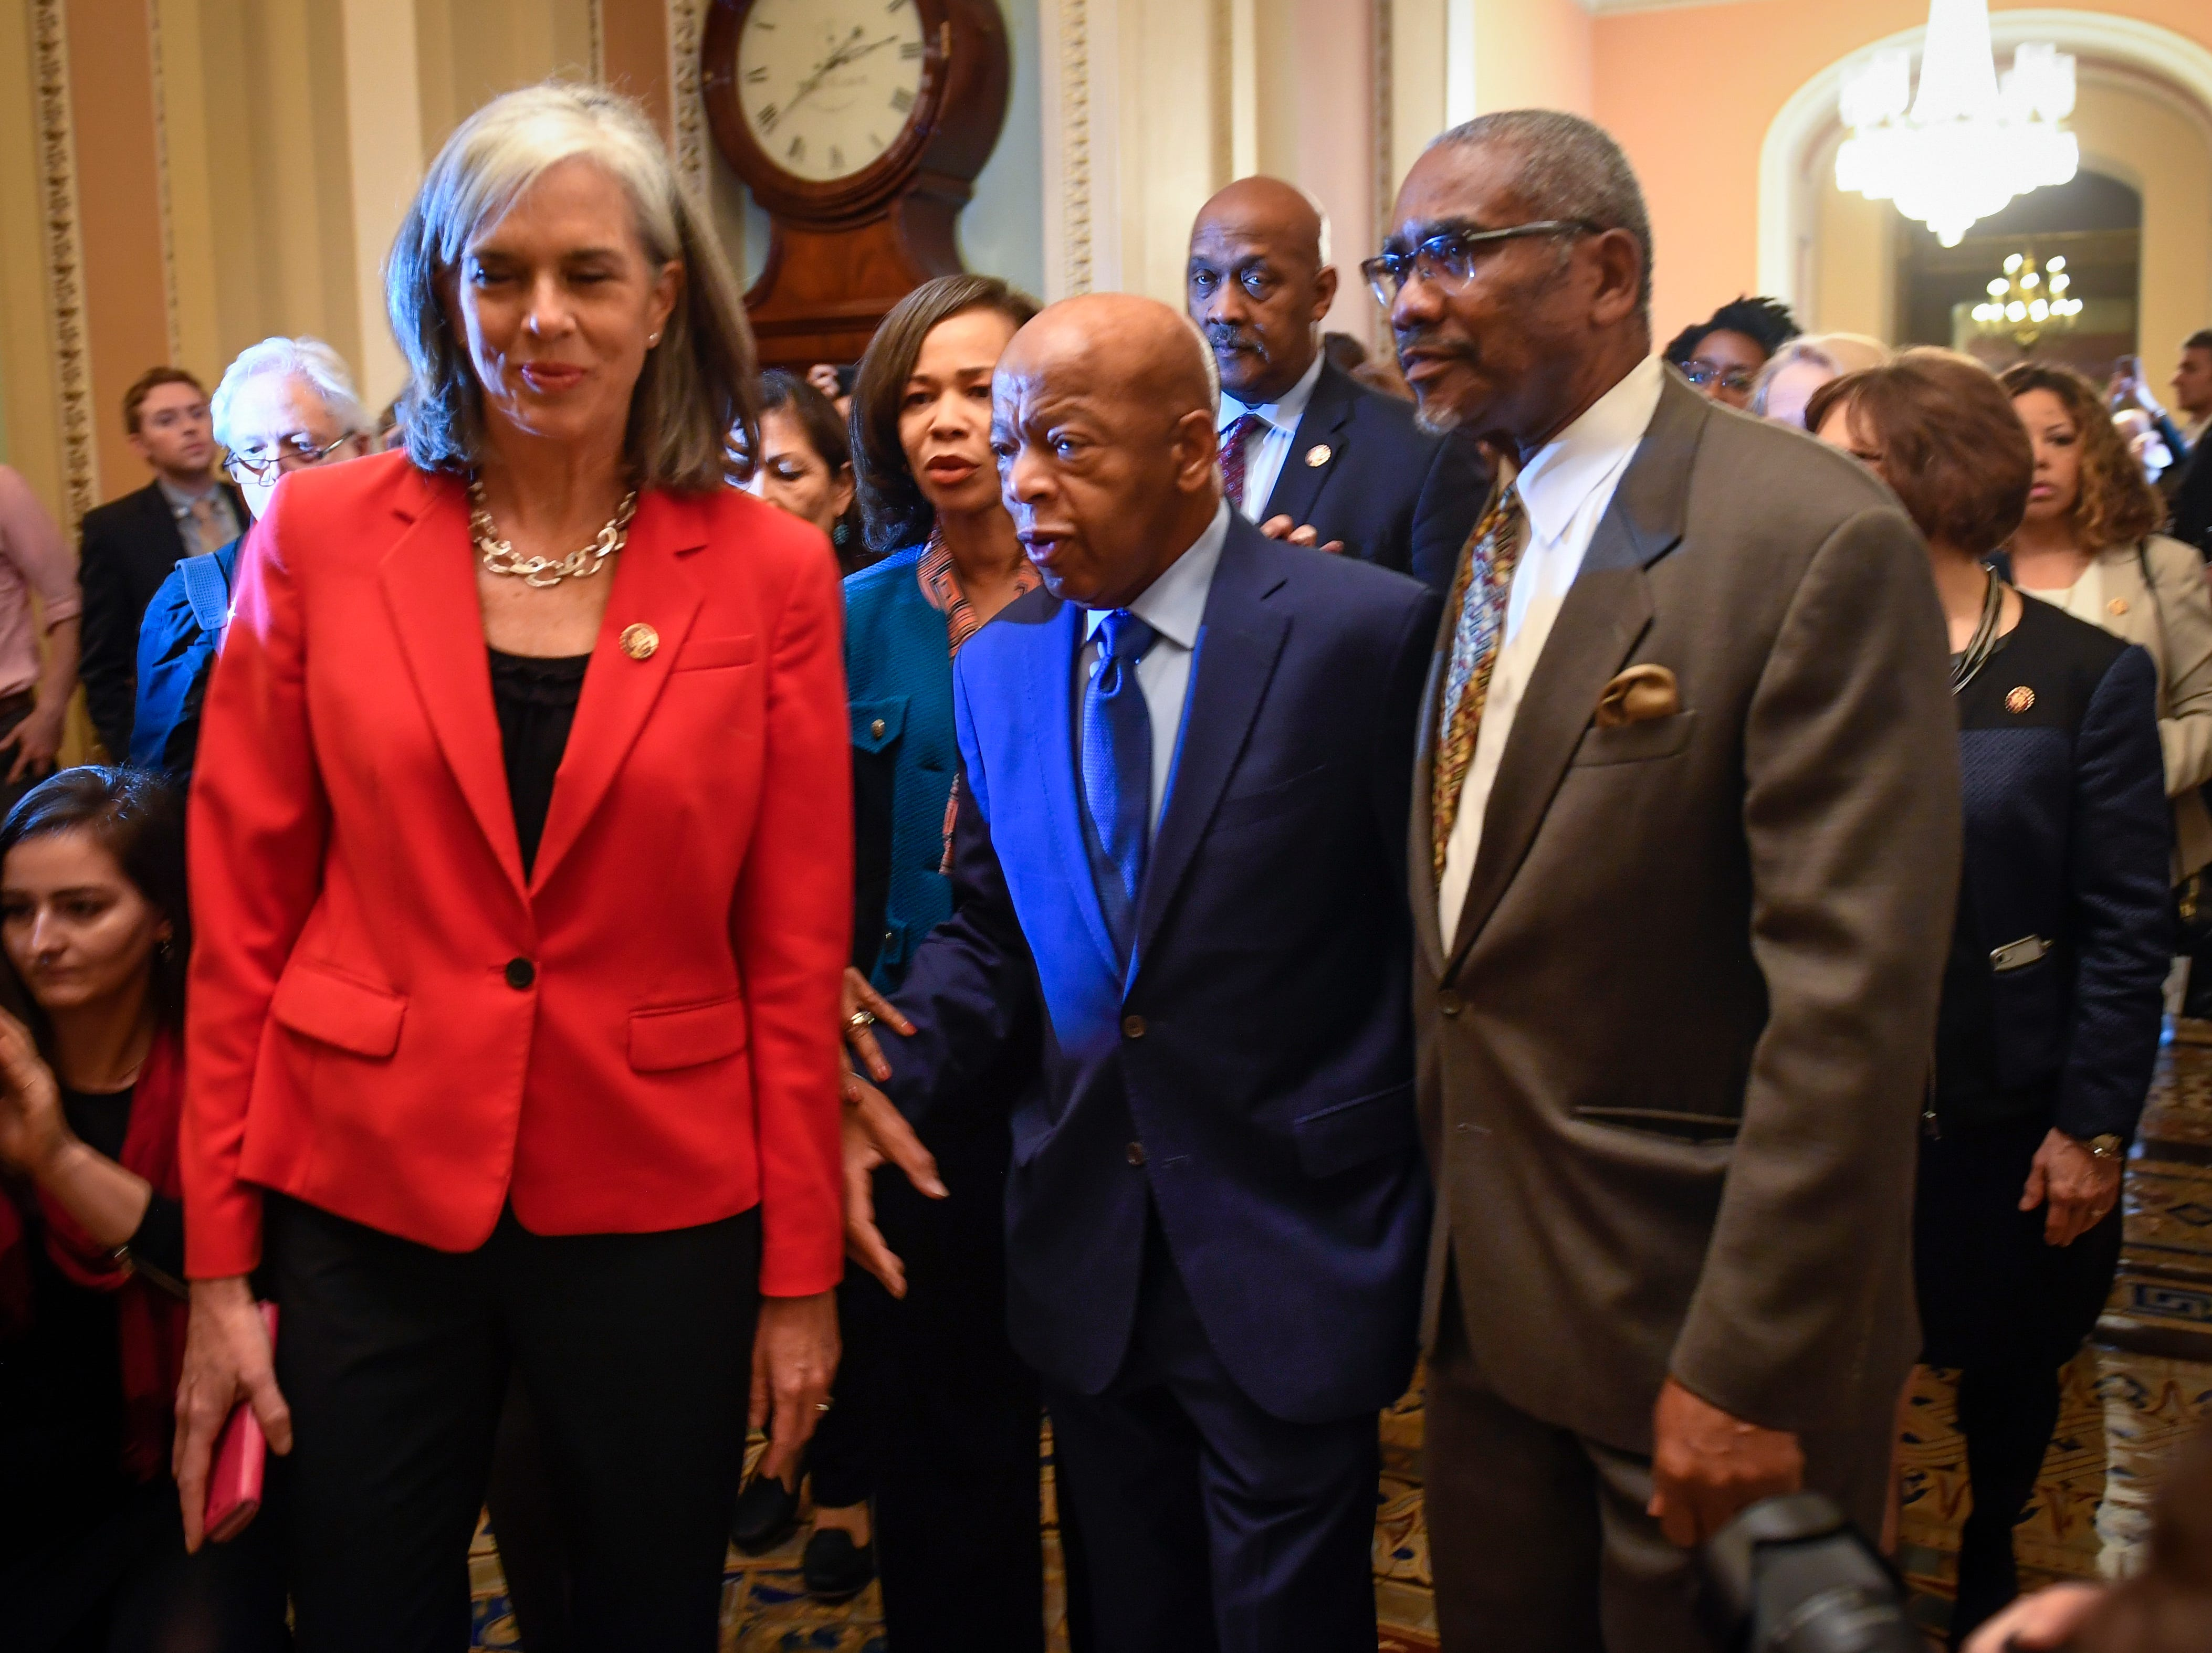 Rep. John Lewis (D-GA), center, and other Democratic House members walk into the Senate chambers before the Senate rejected a pair of dueling bills Thursday.